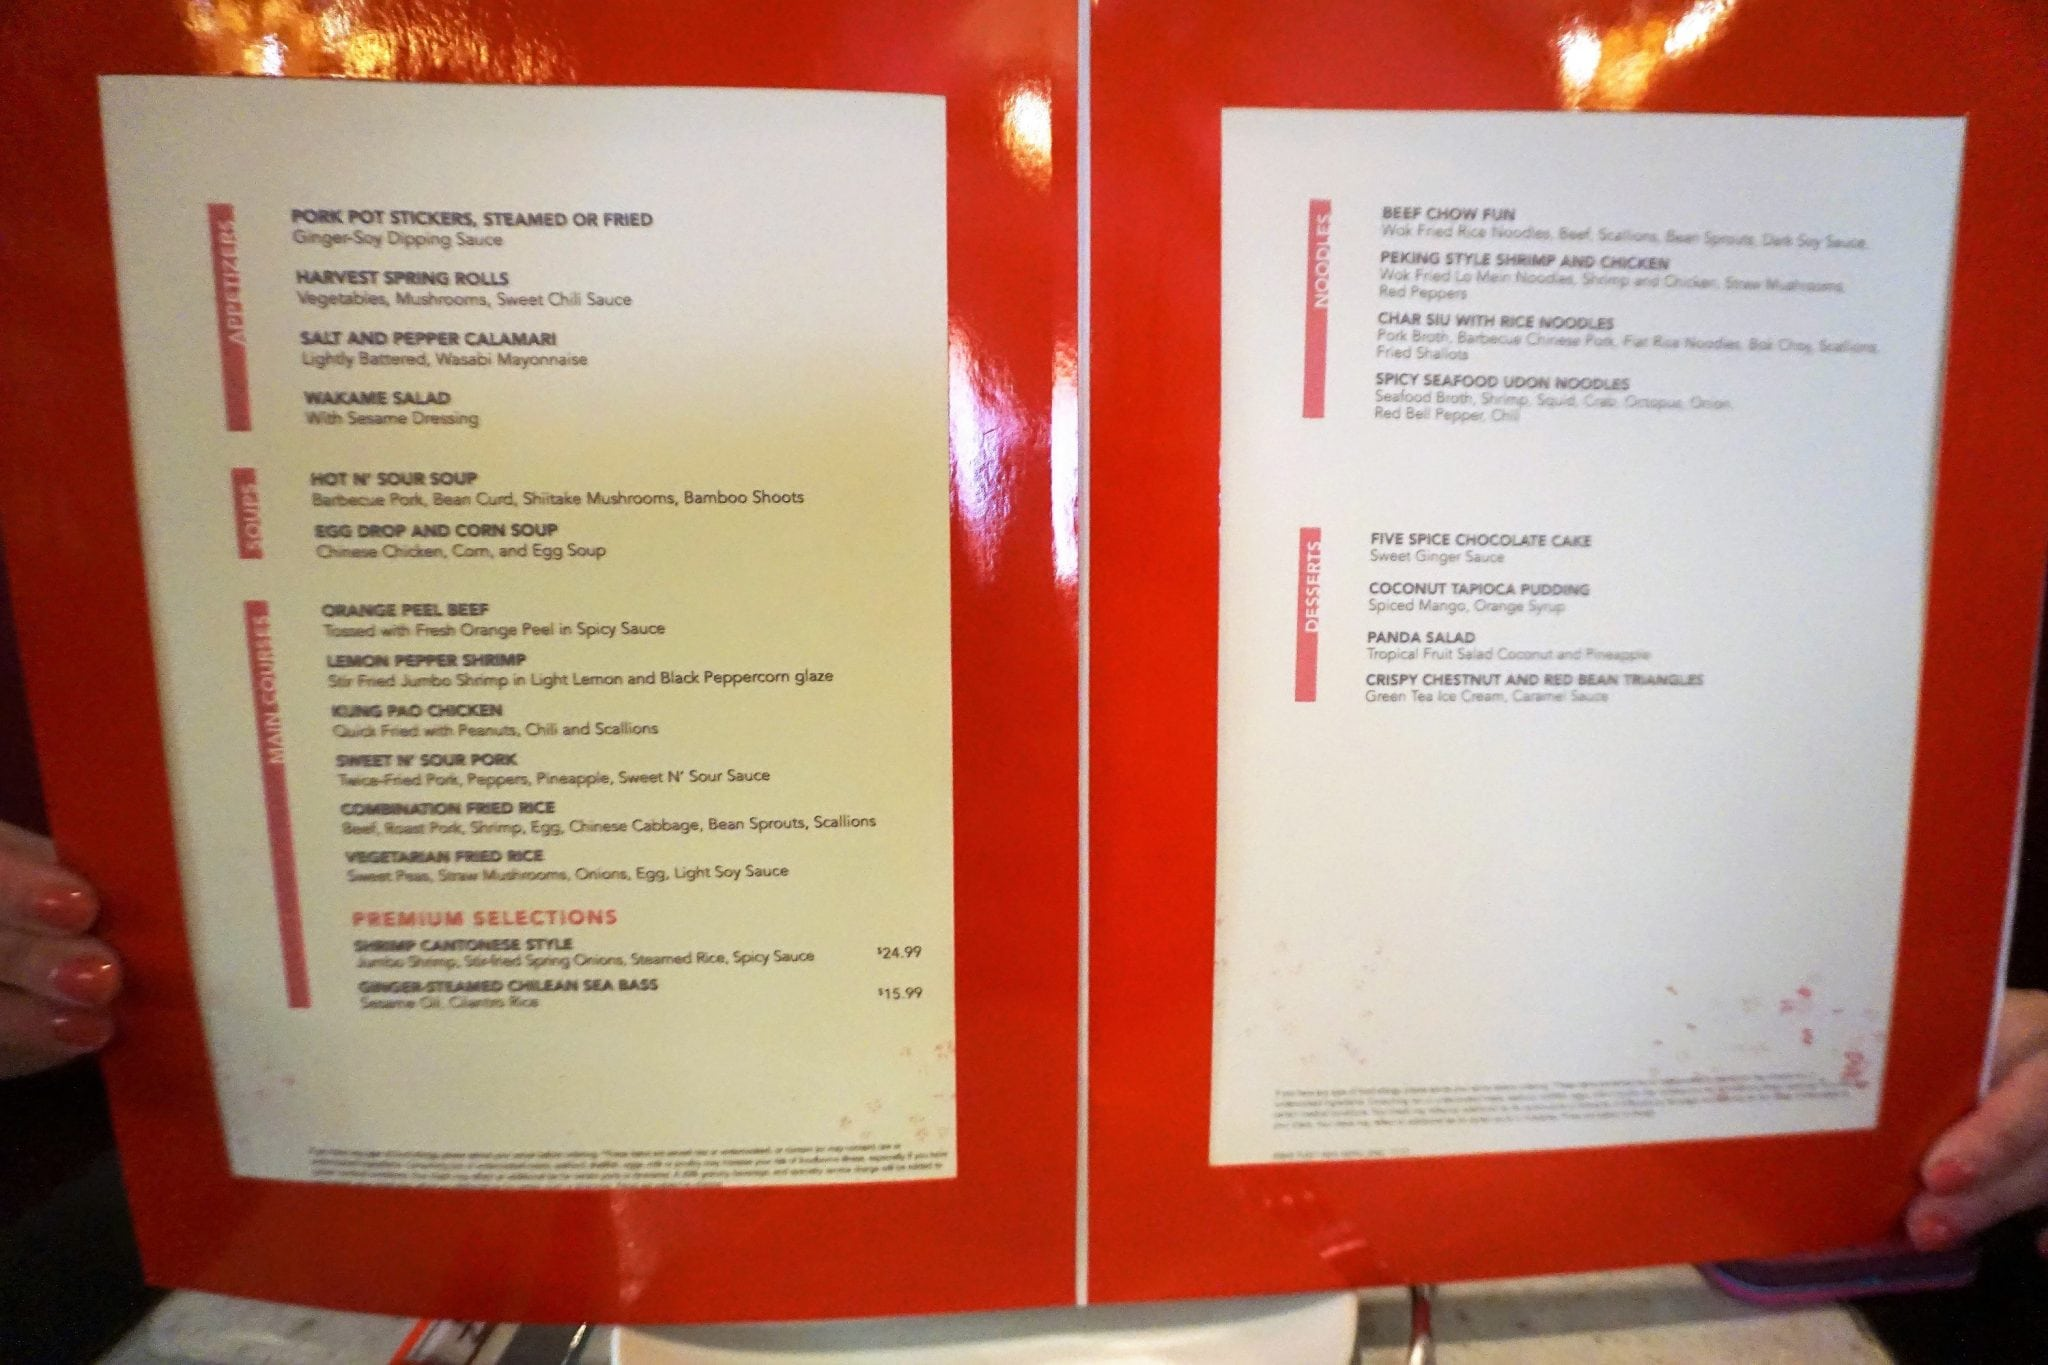 Norwegian Jewel La Cucina Menu Norwegian Epic Restaurant Menus And Guide 2018 Eatsleepcruise